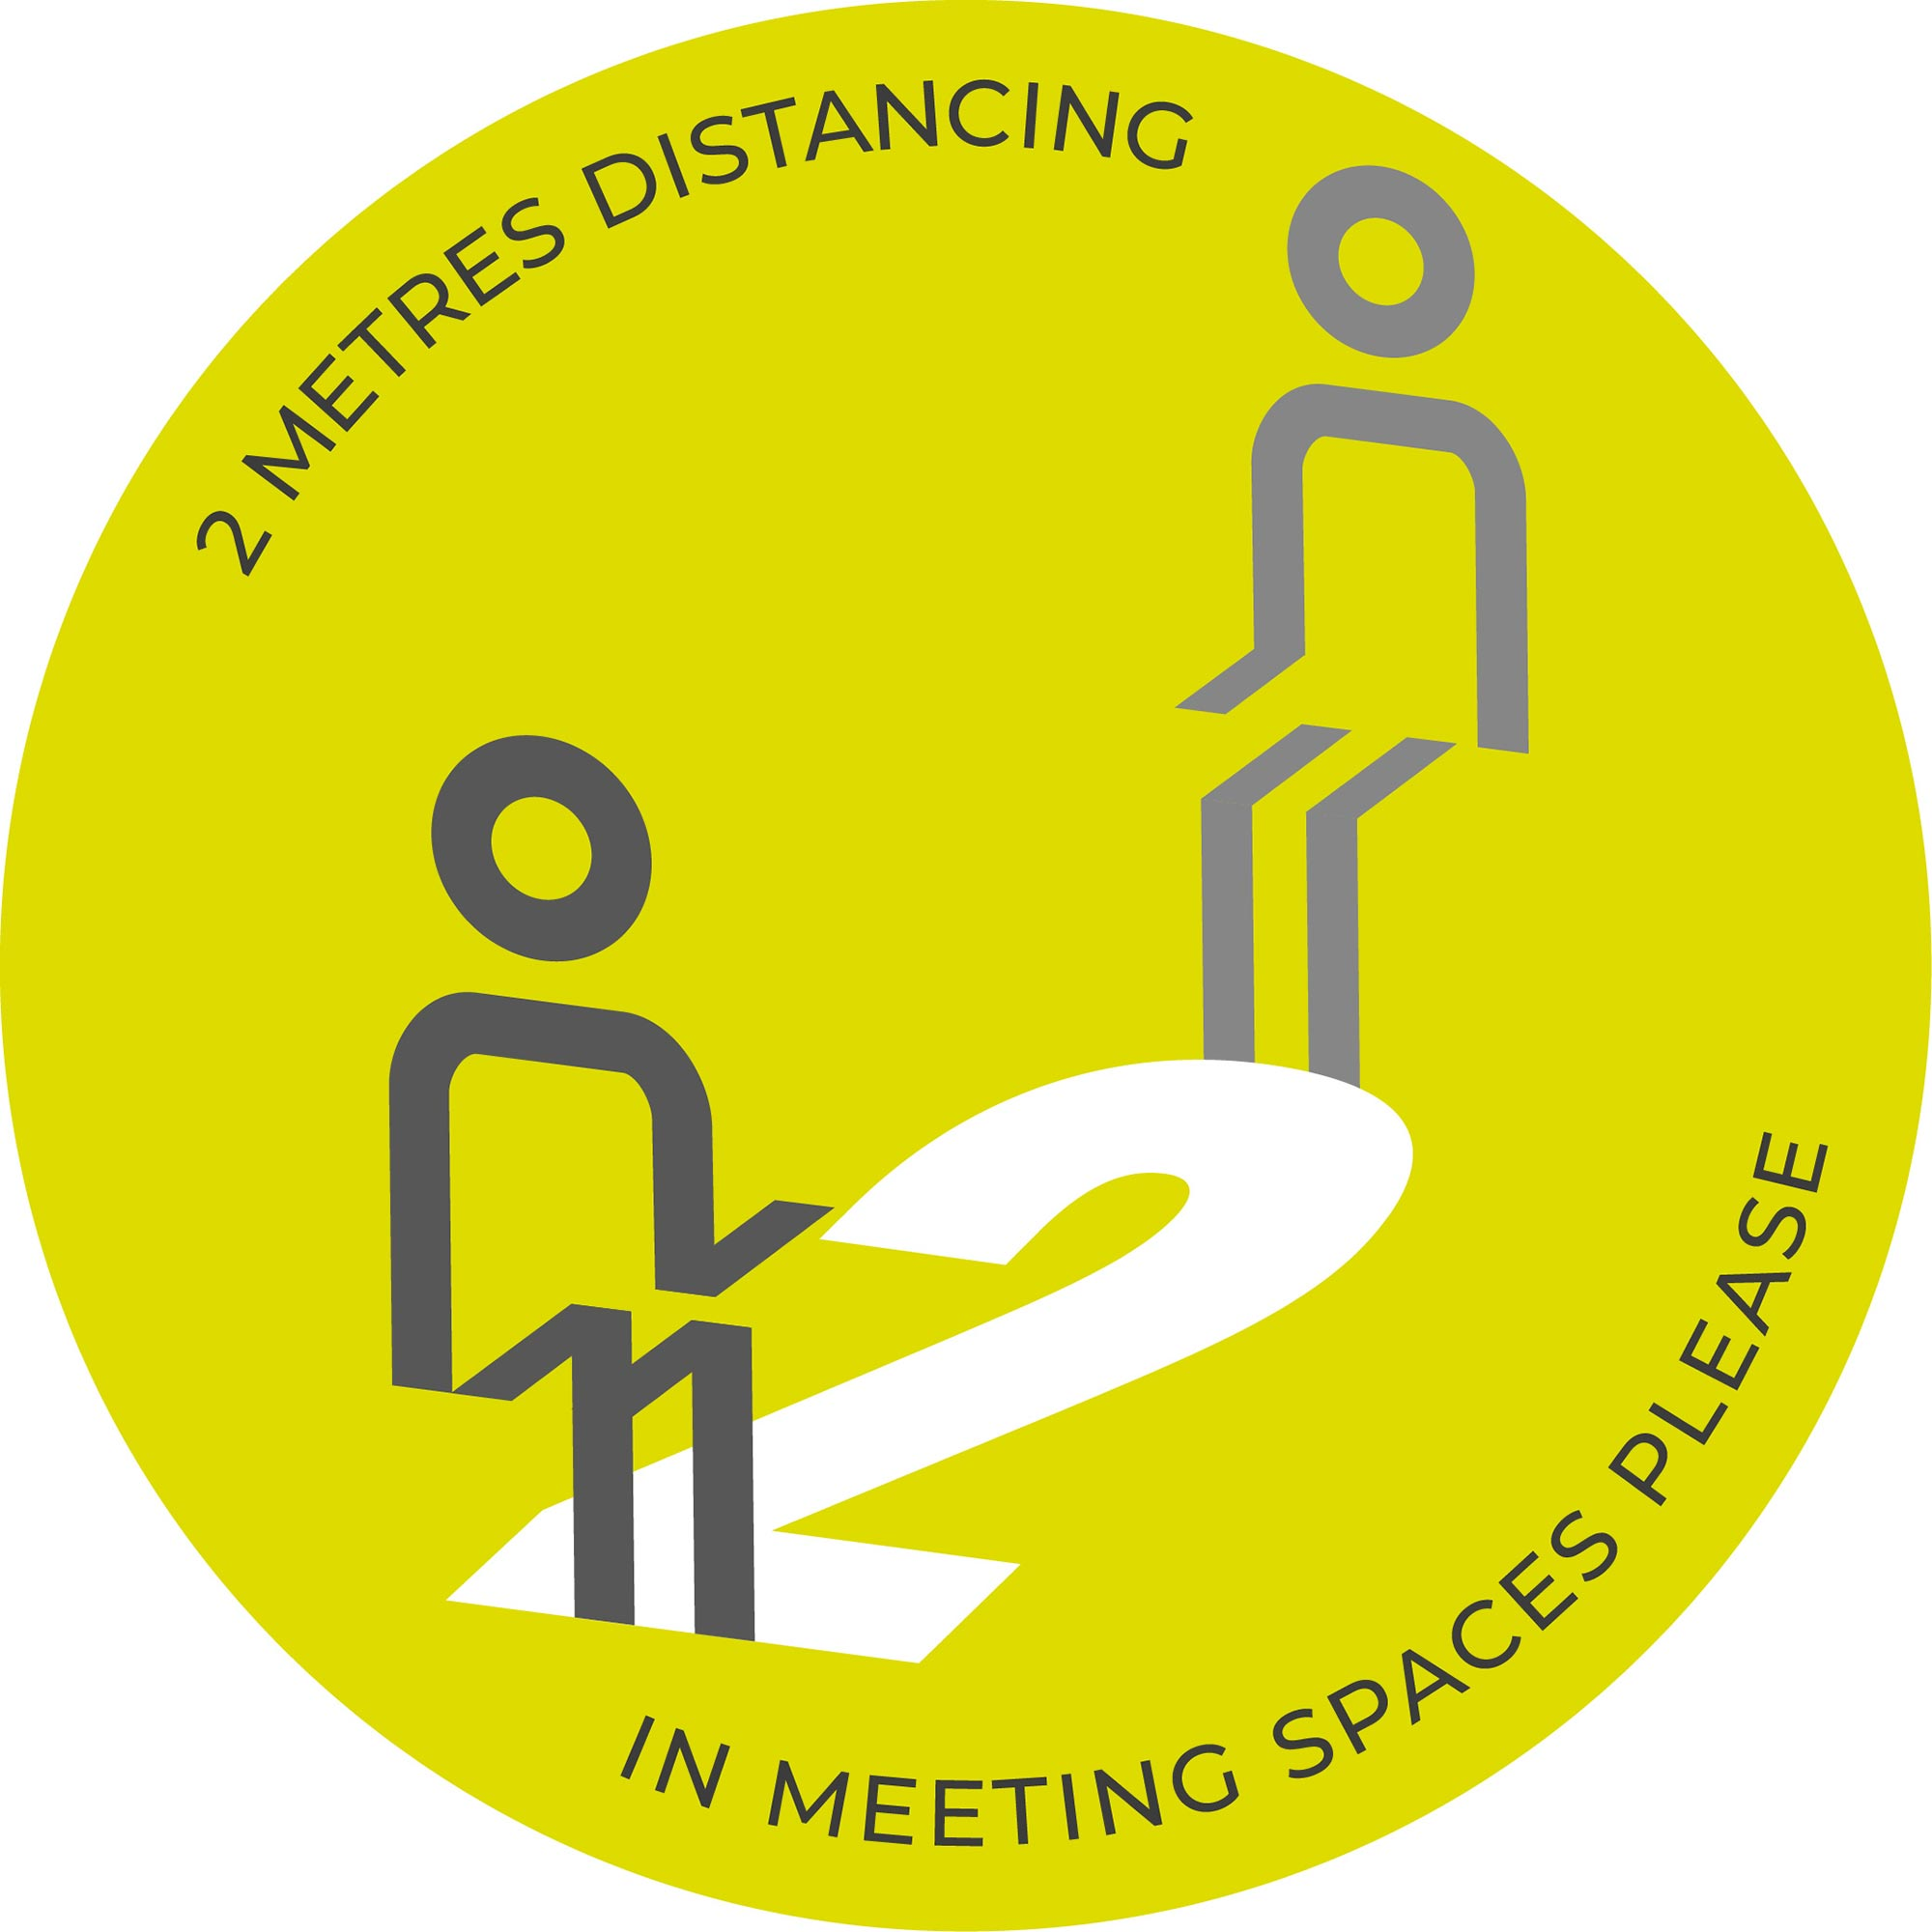 Meeting Spaces Distancing - Green sticker